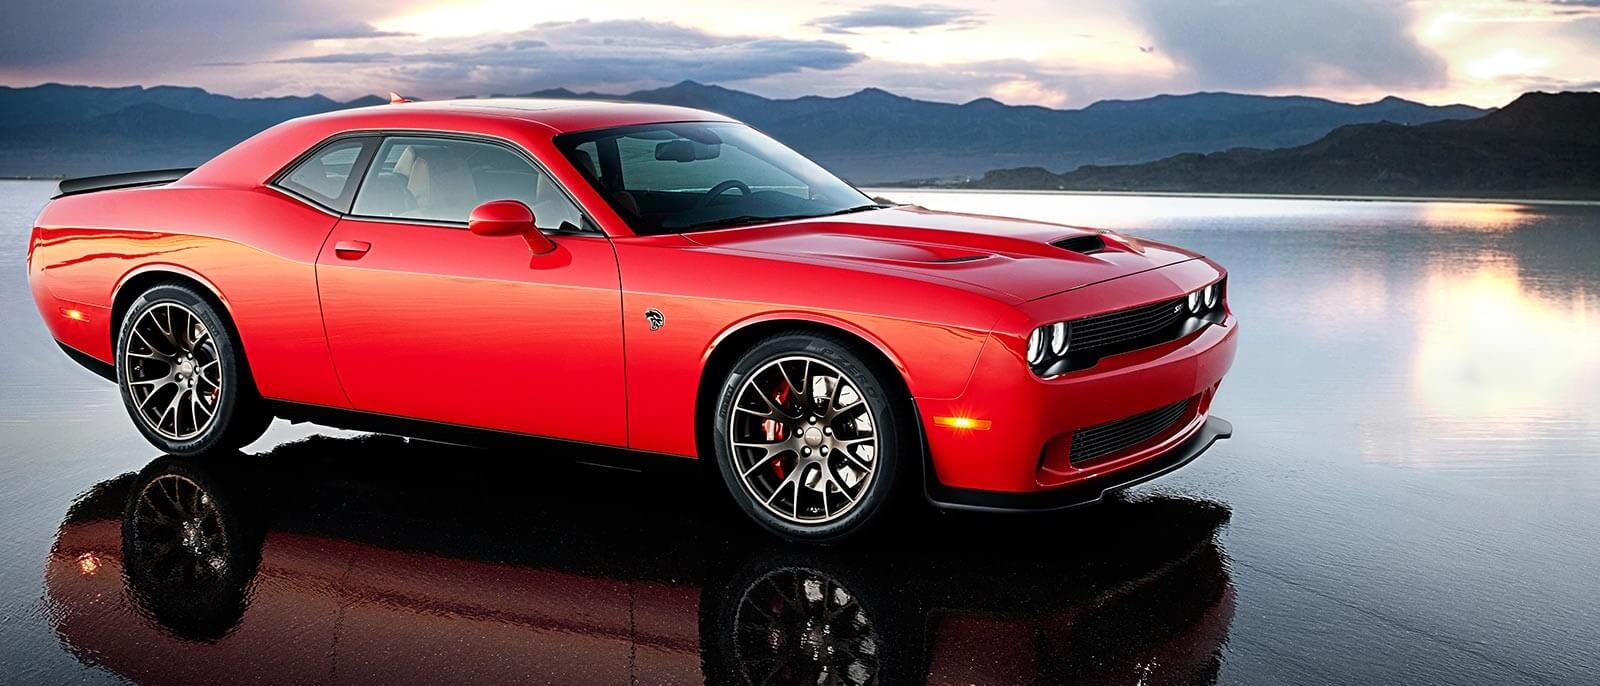 2016 Dodge Challenger red